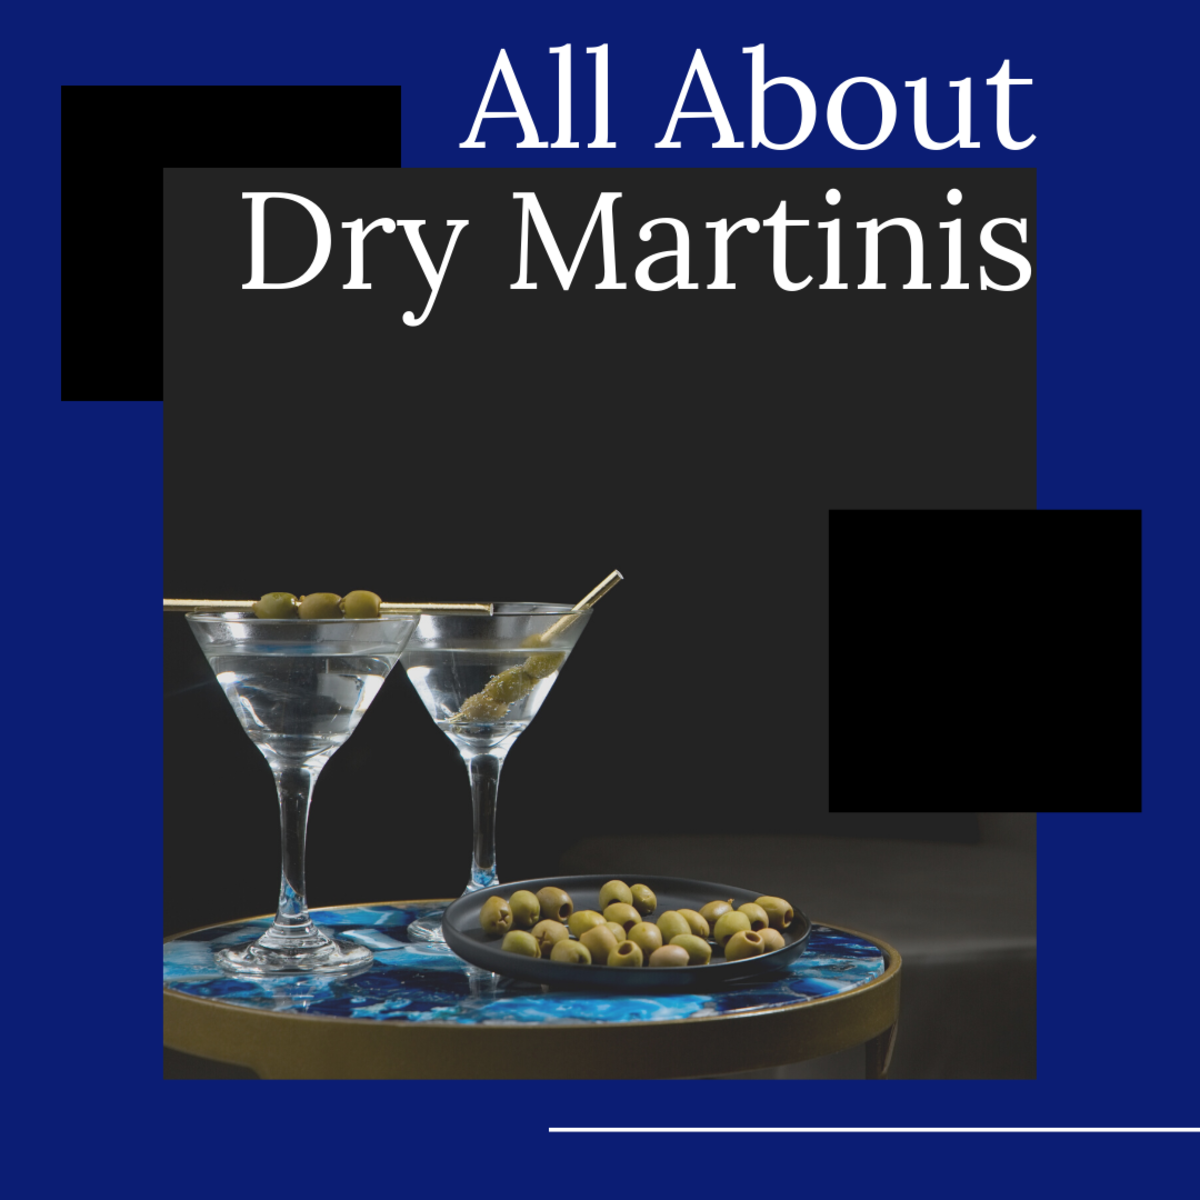 The Story of Dry Martinis